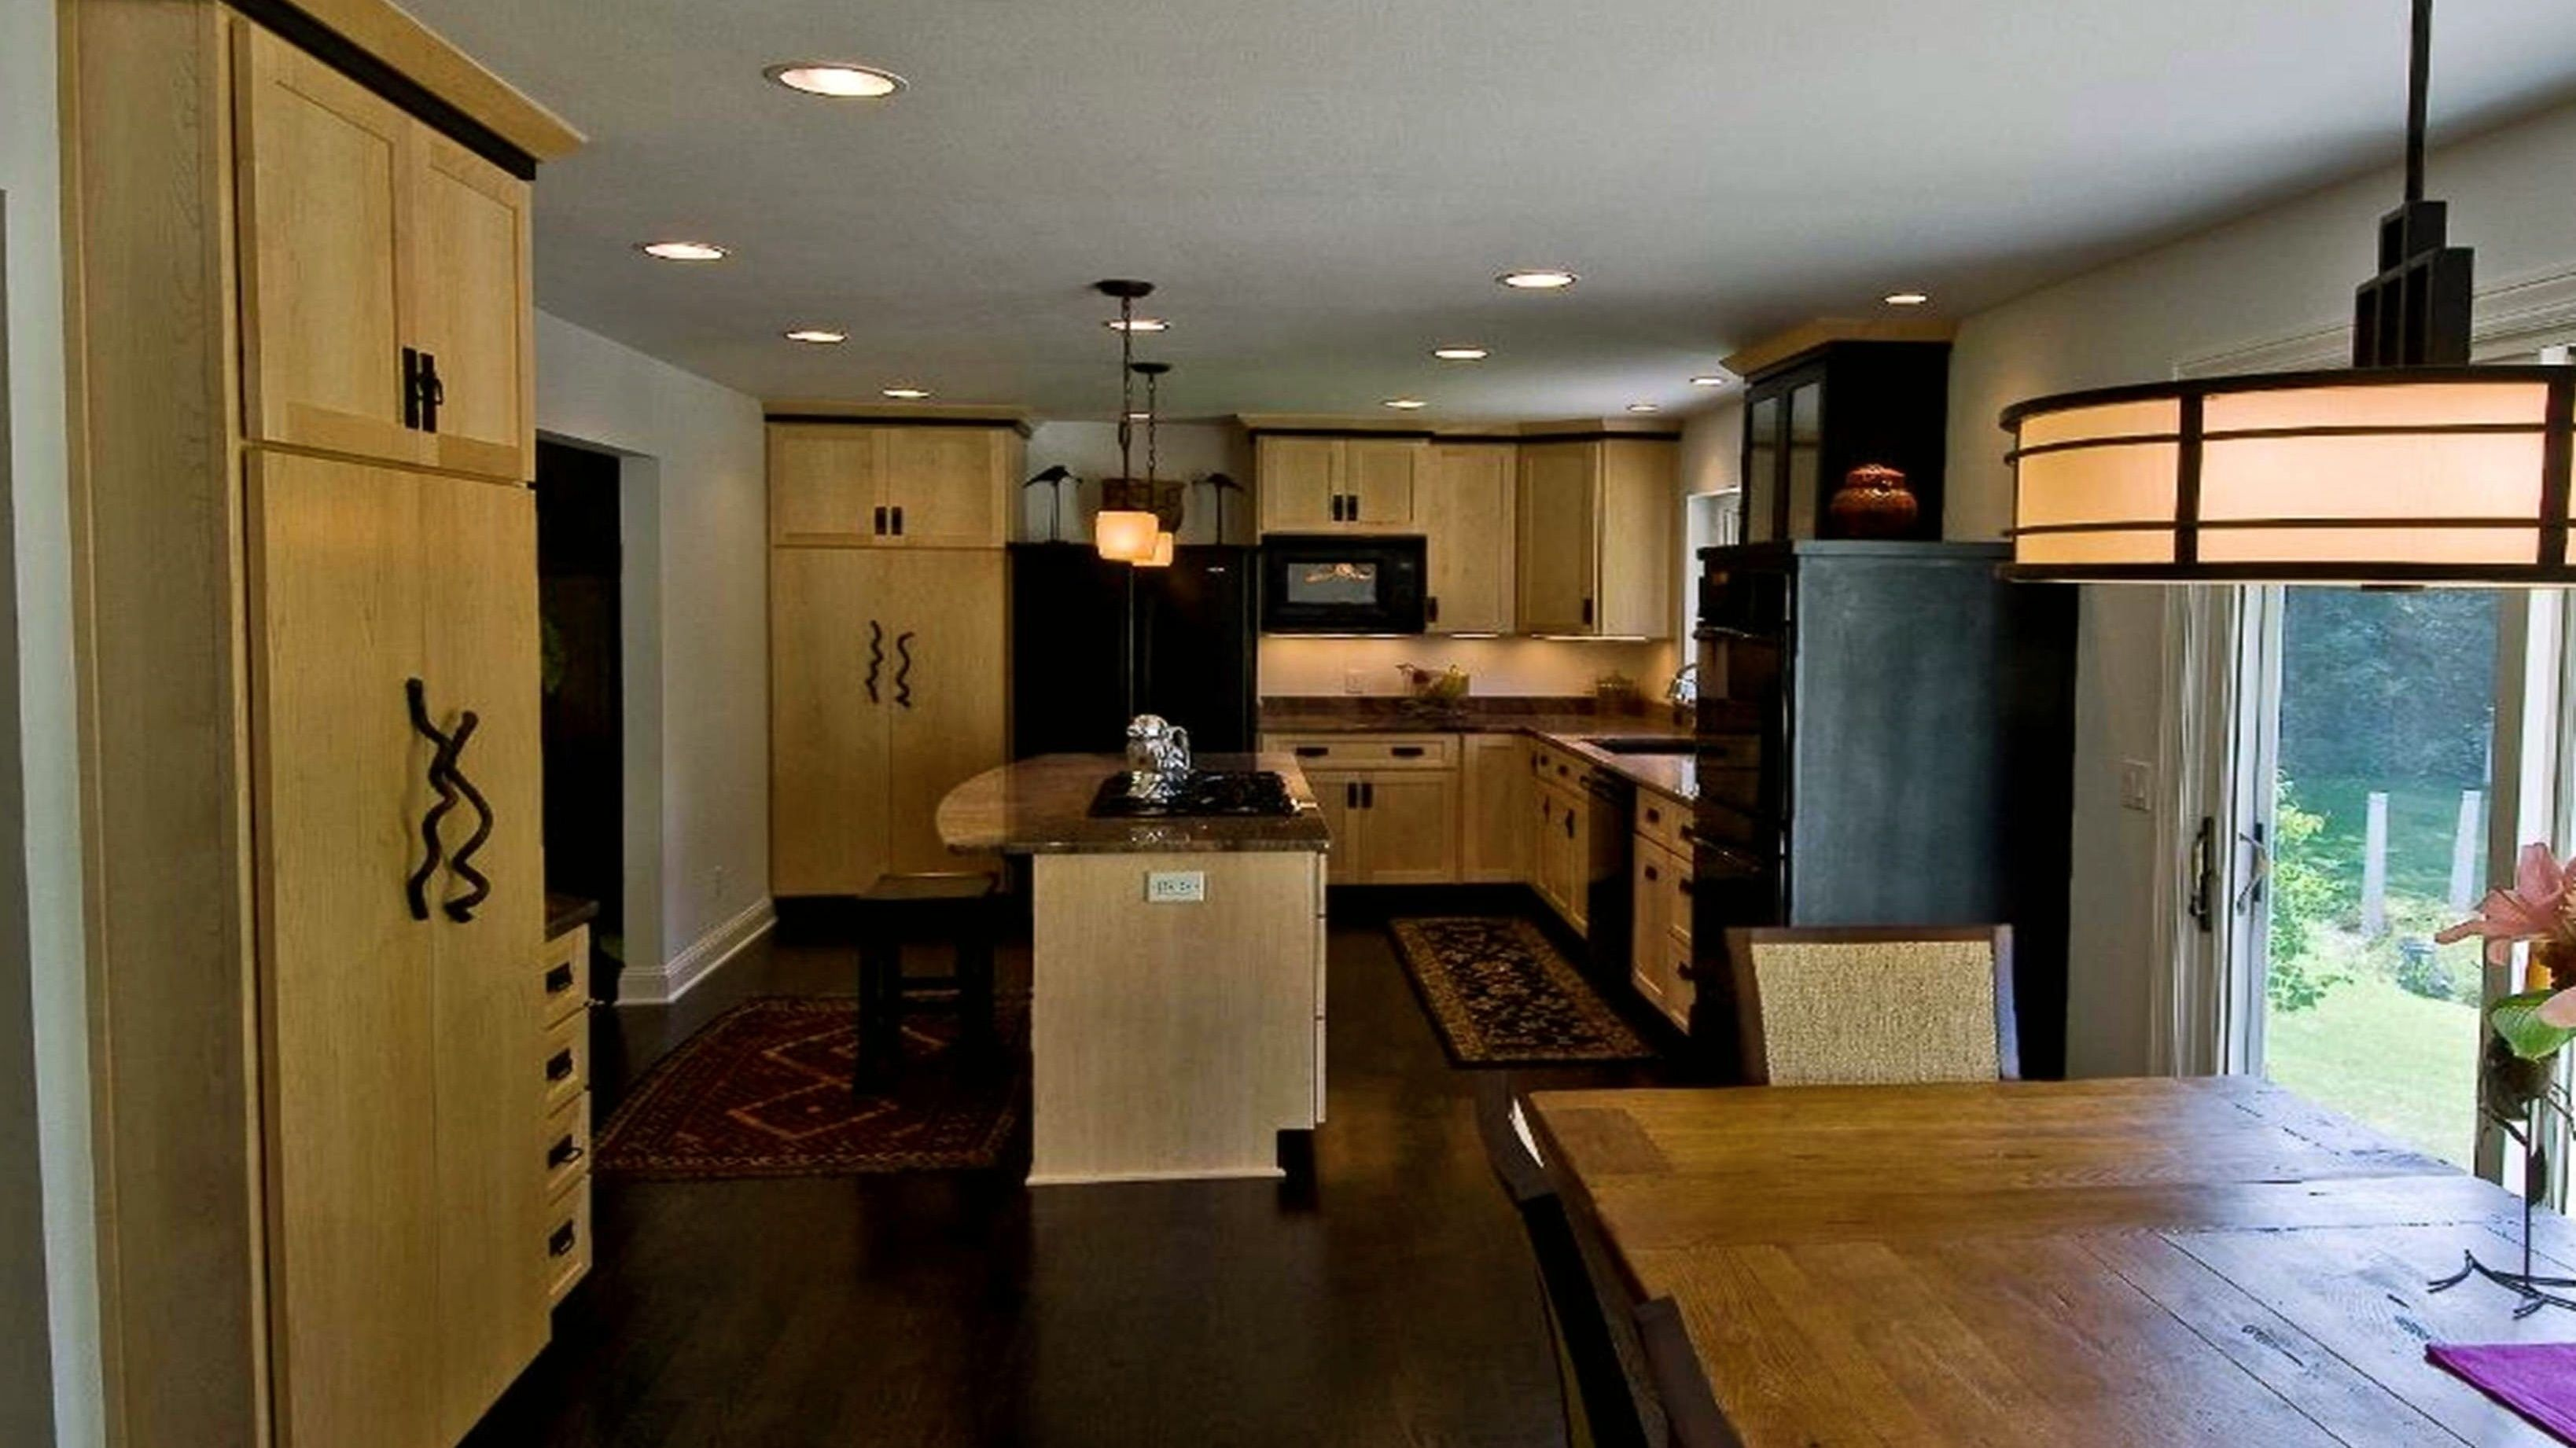 Walnut floors, maple cabinets, dark countertops, soft ... on Maple Cabinets With Black Countertops  id=91256